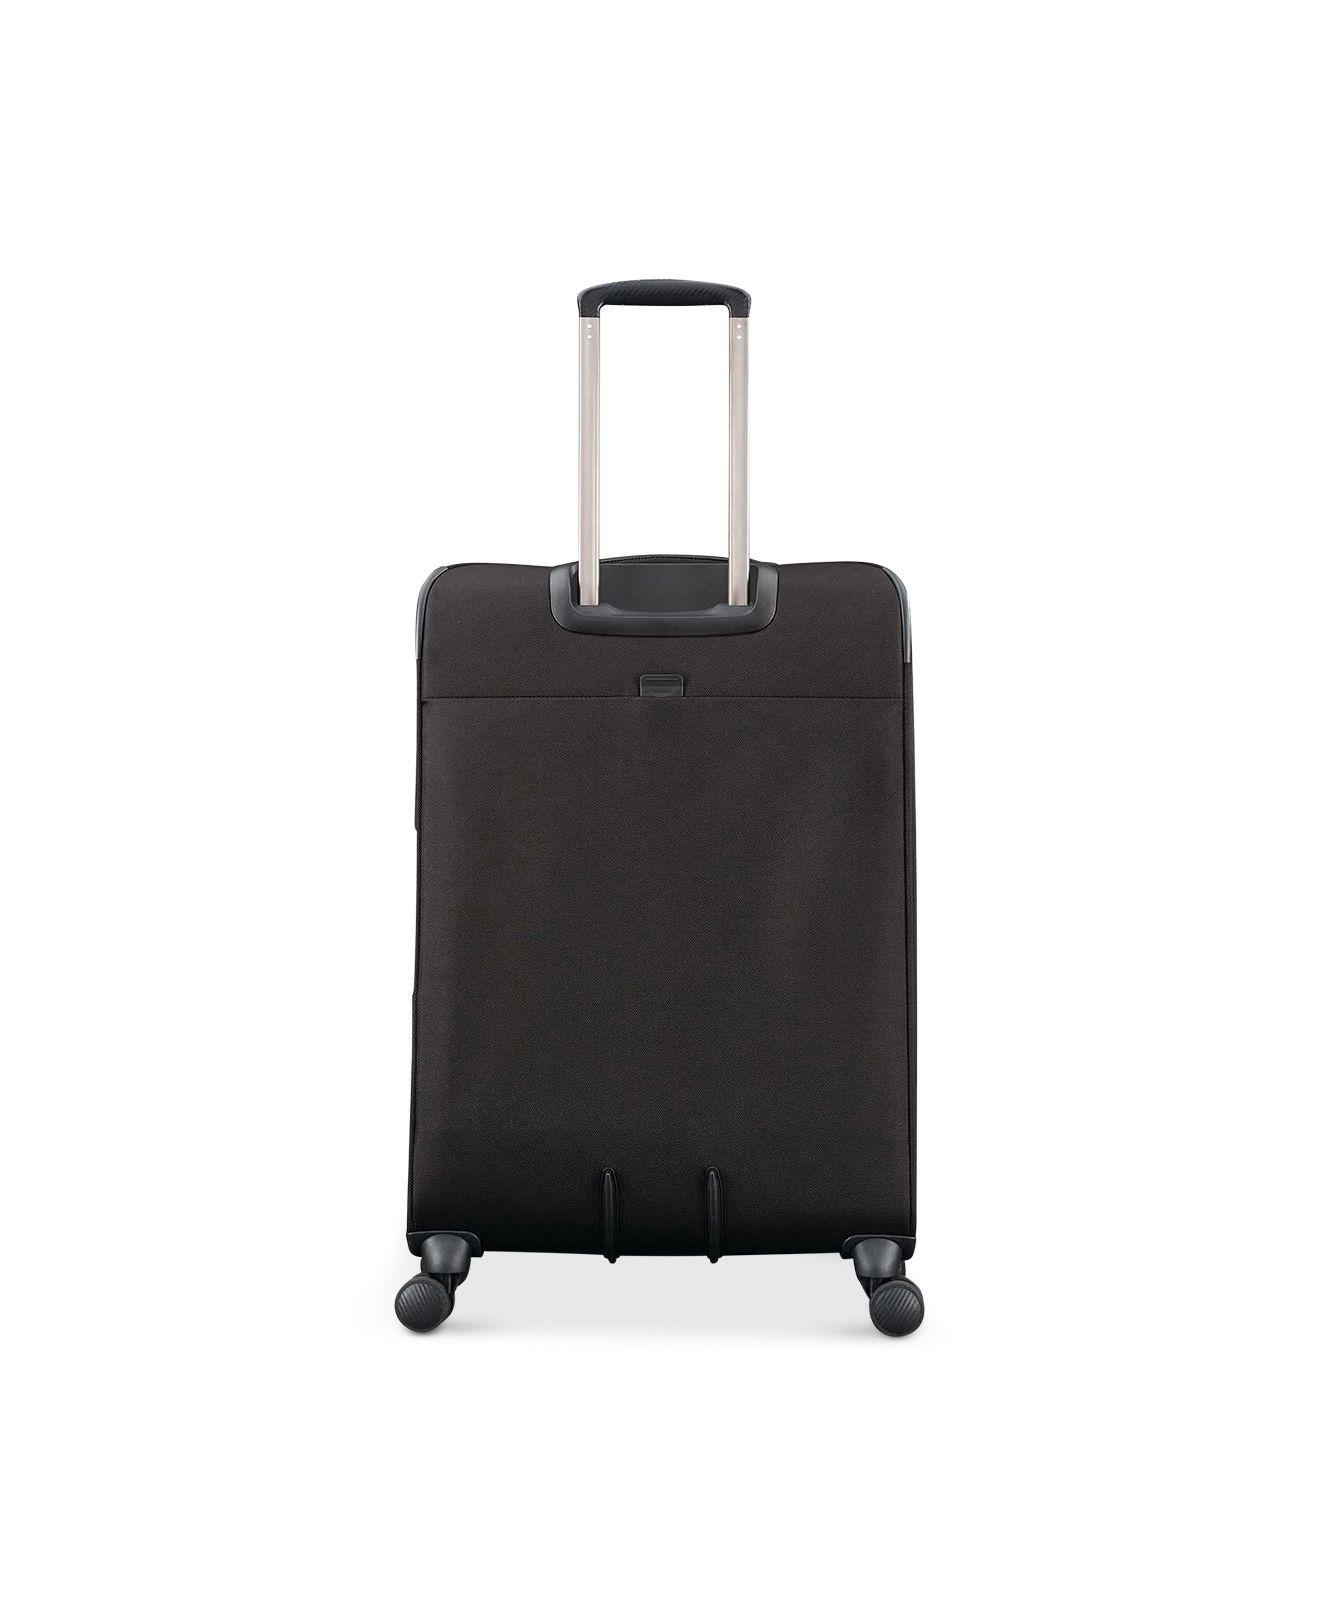 0bf52c143ad6 Lyst - Hartmann Century Medium-journey Expandable Spinner Suitcase in Black  - Save 20.0%